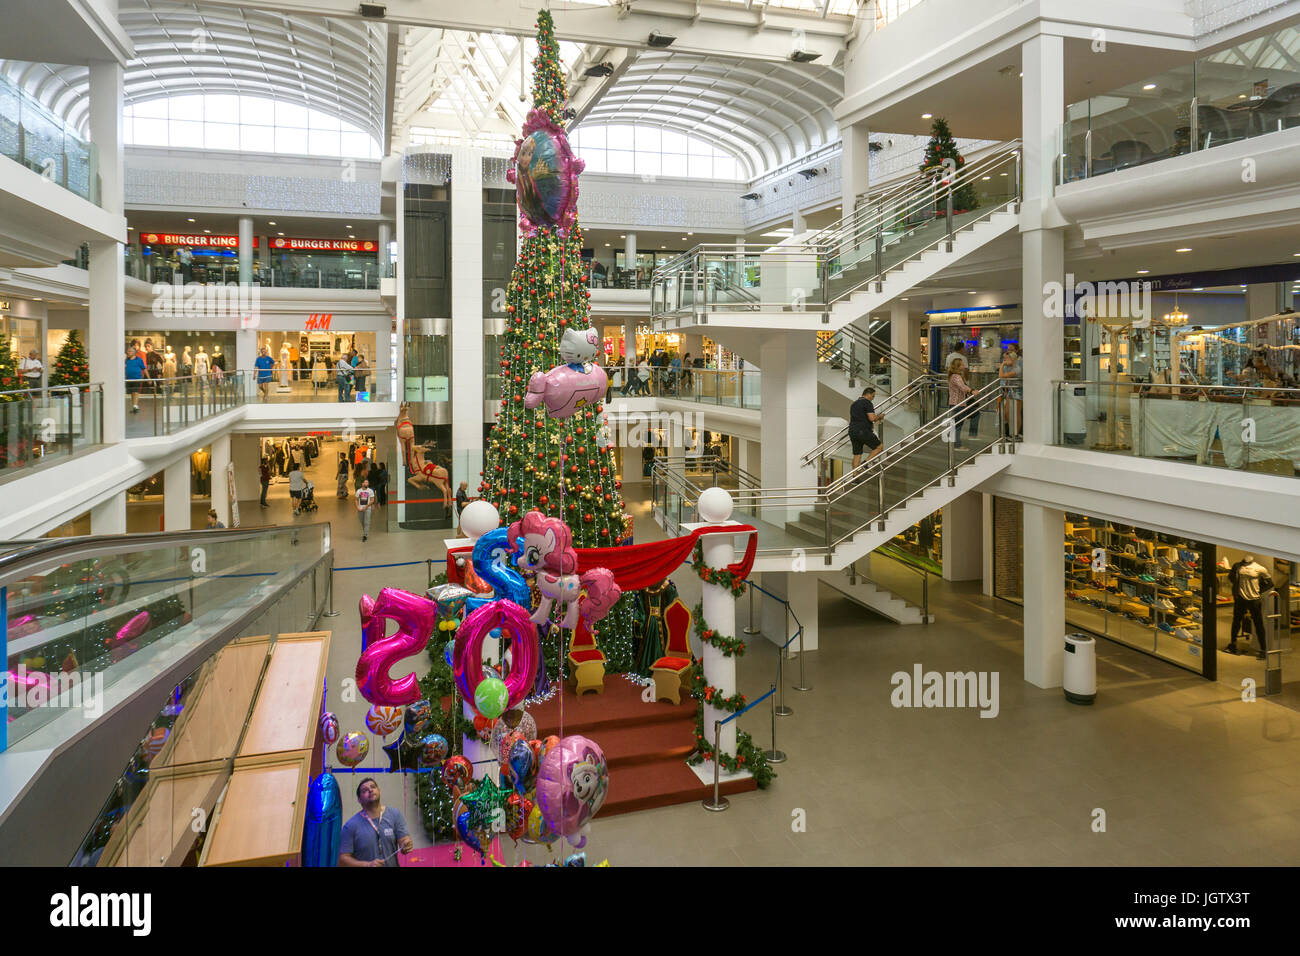 Christmas decoration at Deiland, shopping center, Playa Honda, Lanzarote island, Canary islands, Spain, Europe - Stock Image